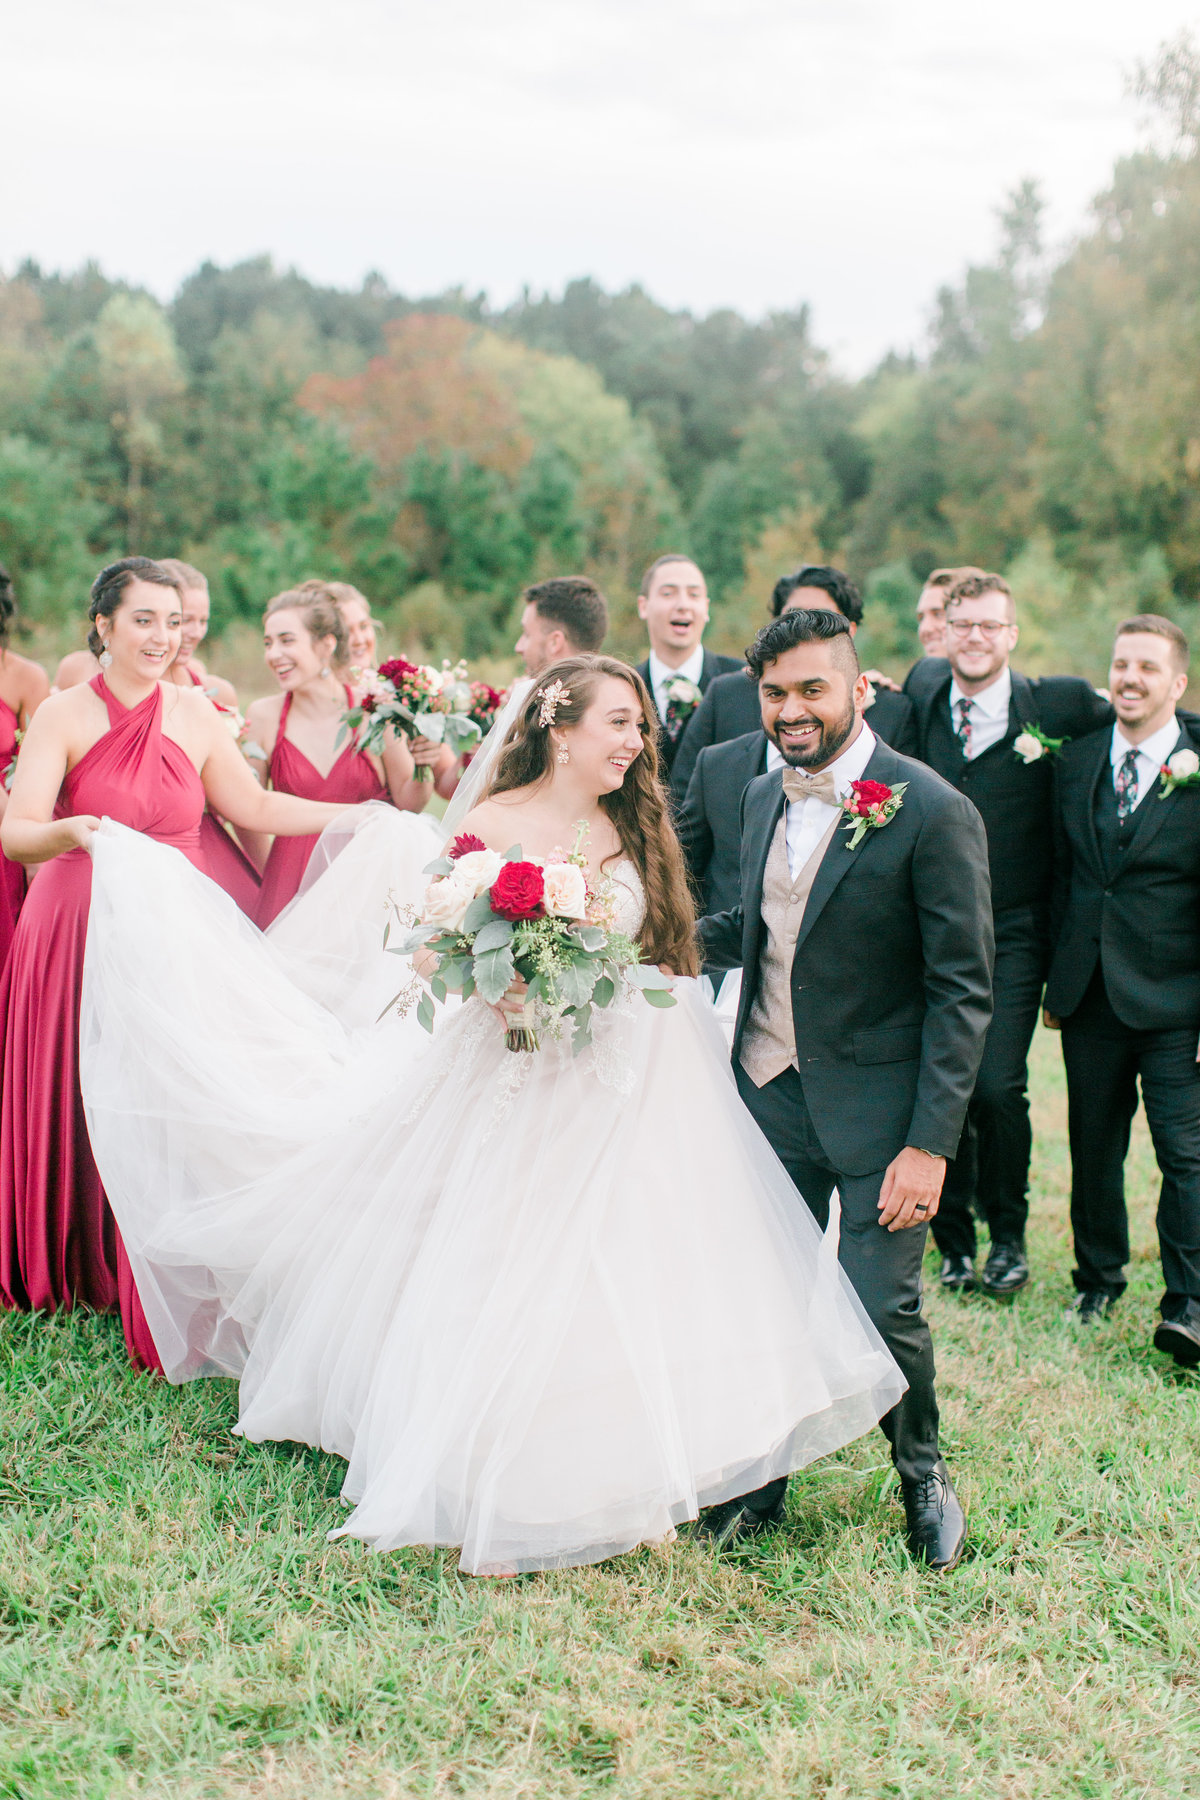 Williamsburg_Winery_Fall_Wedding_Virginia_DC_Photographer_Angelika_Johns_Photography-0100